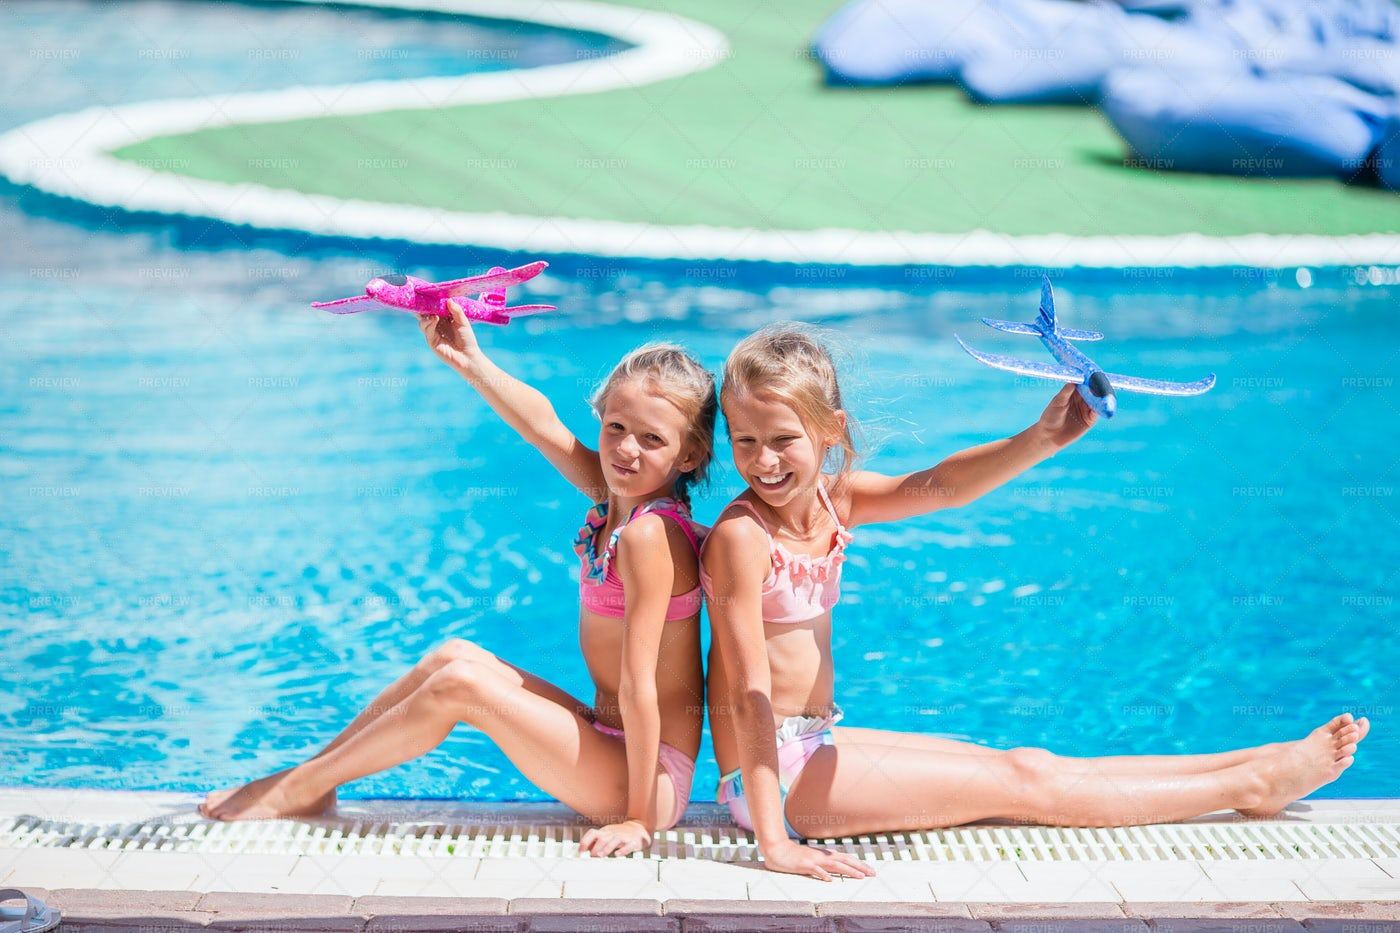 Playing With Airplane Toy In Pool: Stock Photos